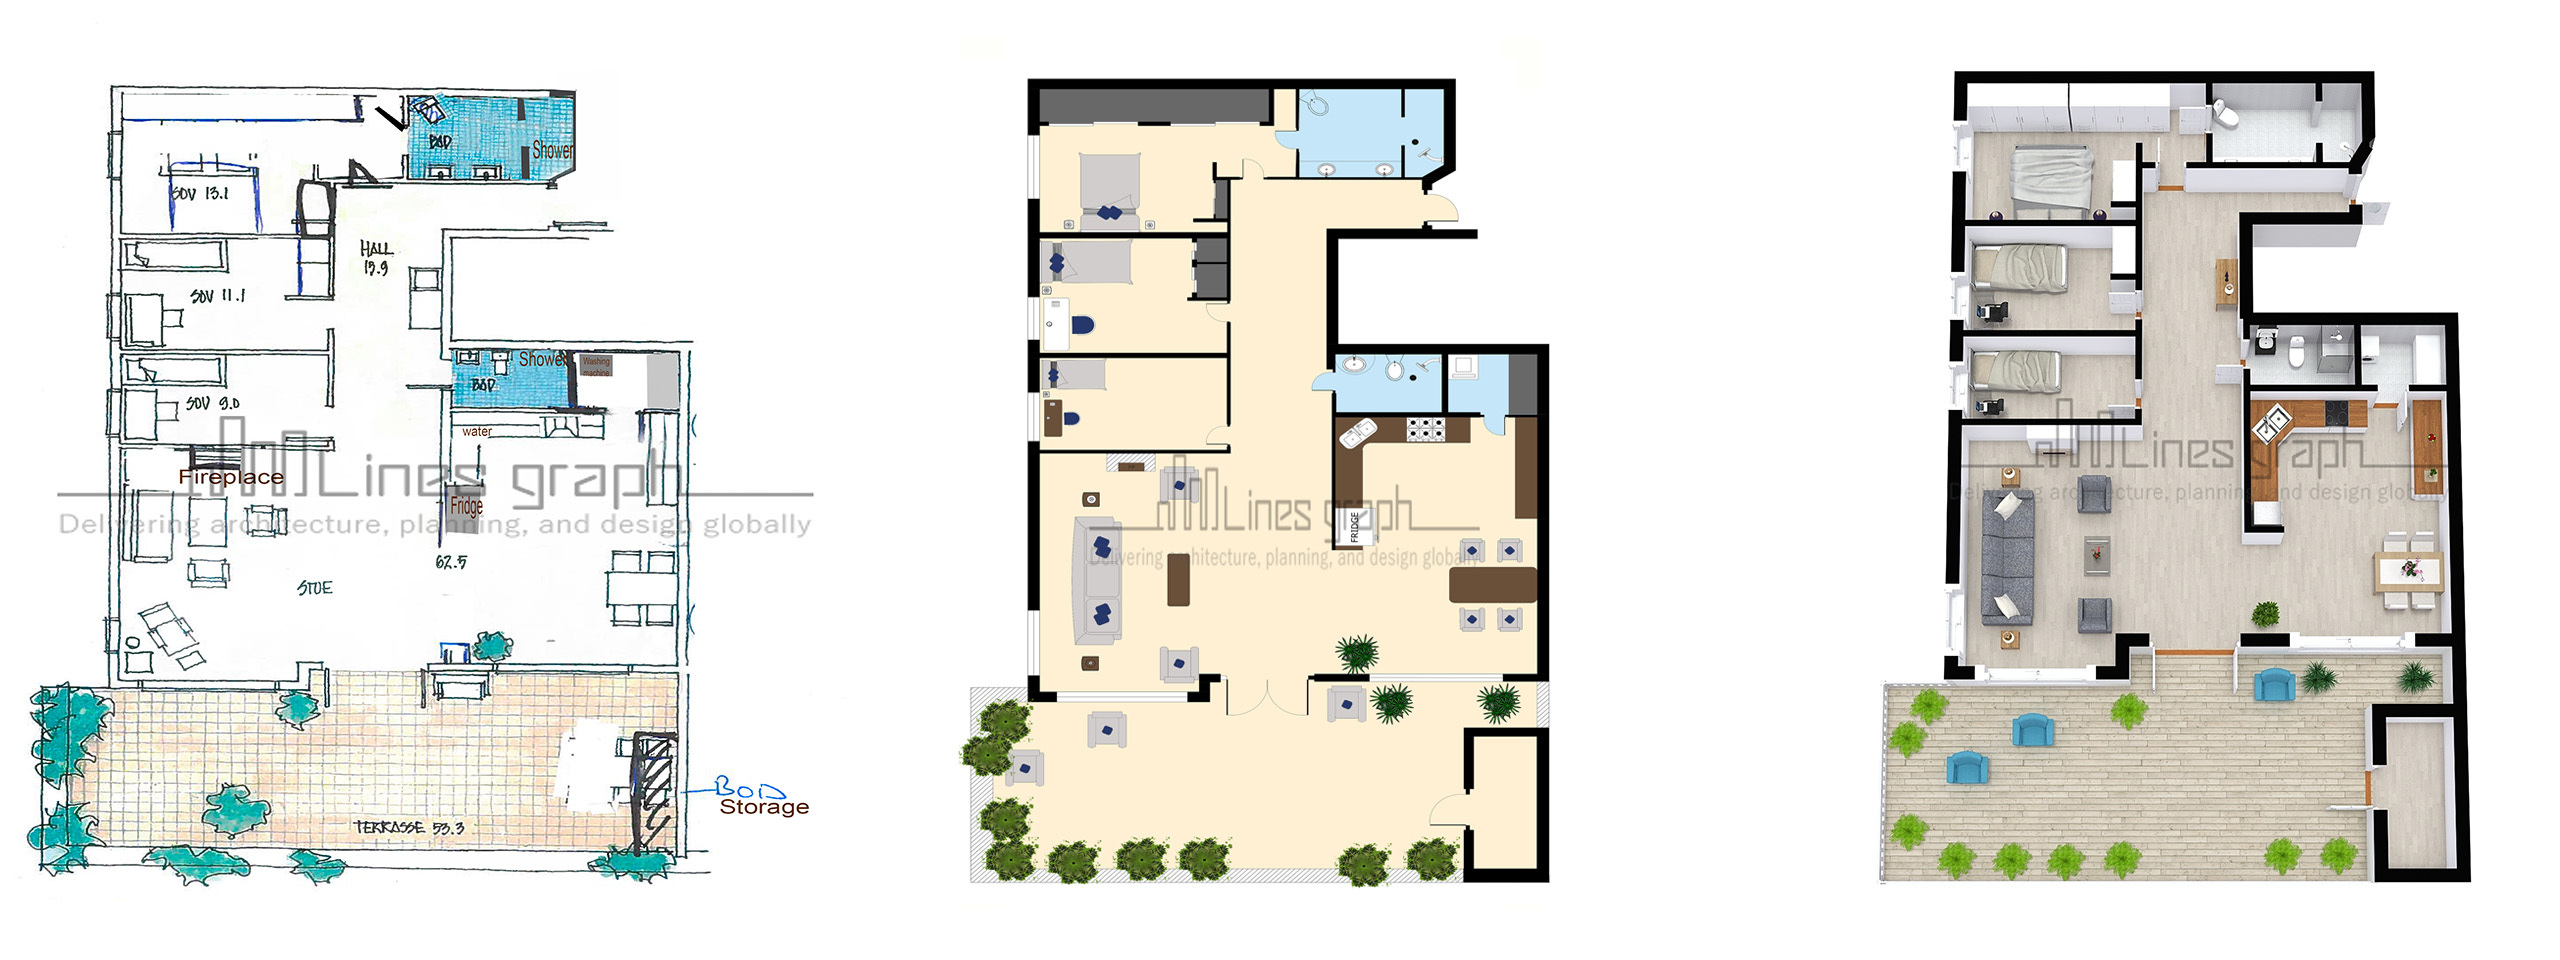 Floor Plan Conversion: Hand Drawn to 2D Colored Fl